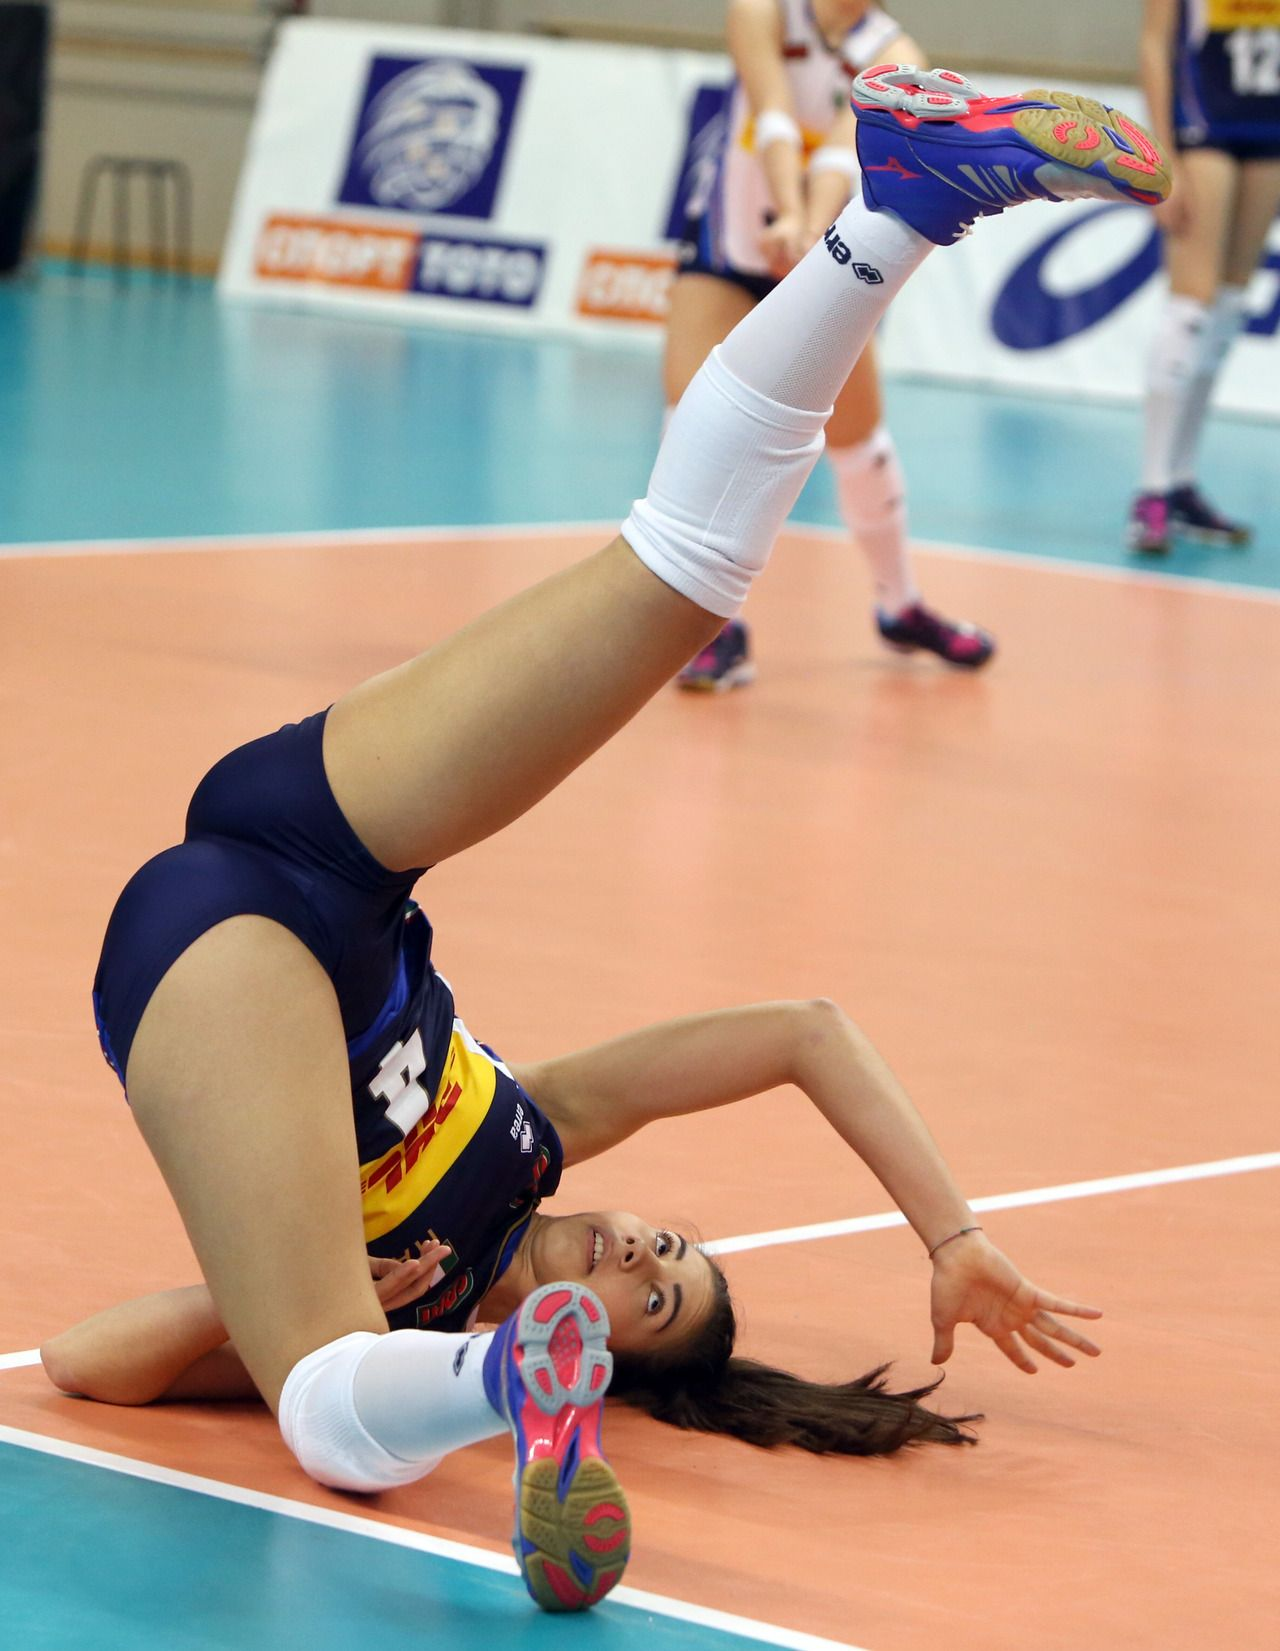 Girls Of Sports Female Volleyball Players Volleyball Players Volleyball Photography